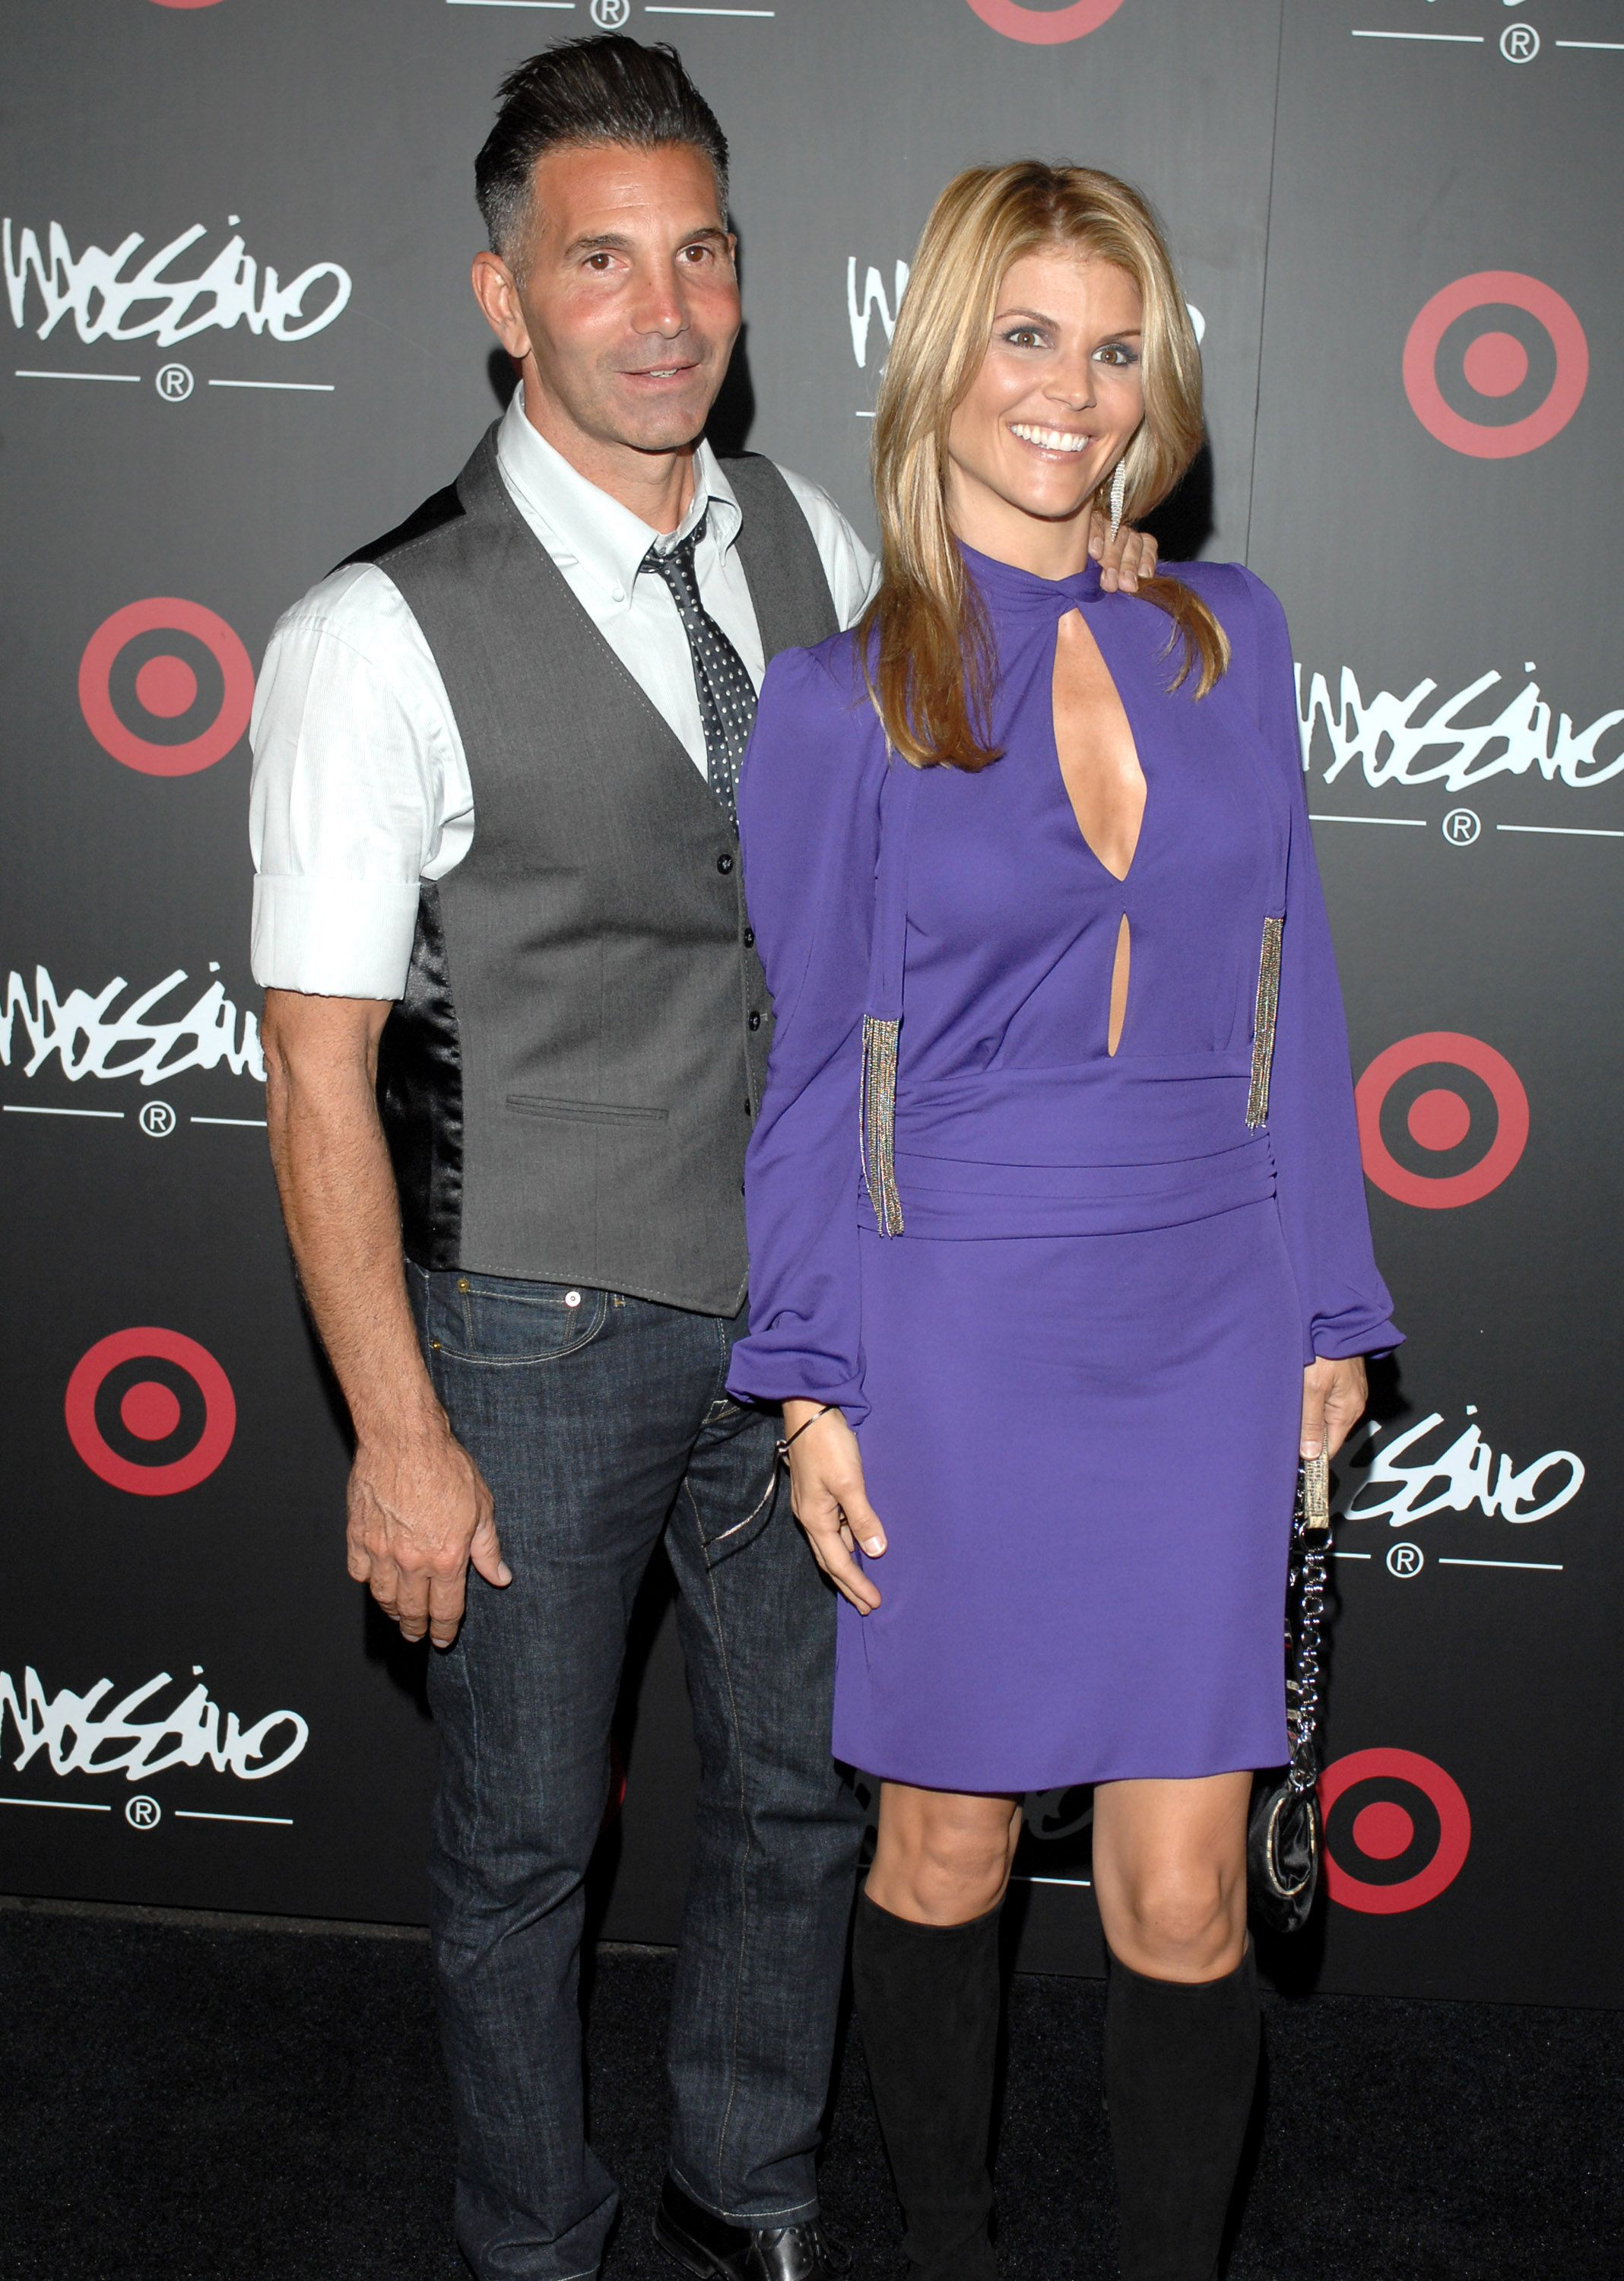 Mossimo Giannulli and Lori Loughlin at Target Hosts LA Fashion Week Party for Designer on October 19, 2006 | Photo: Getty Images